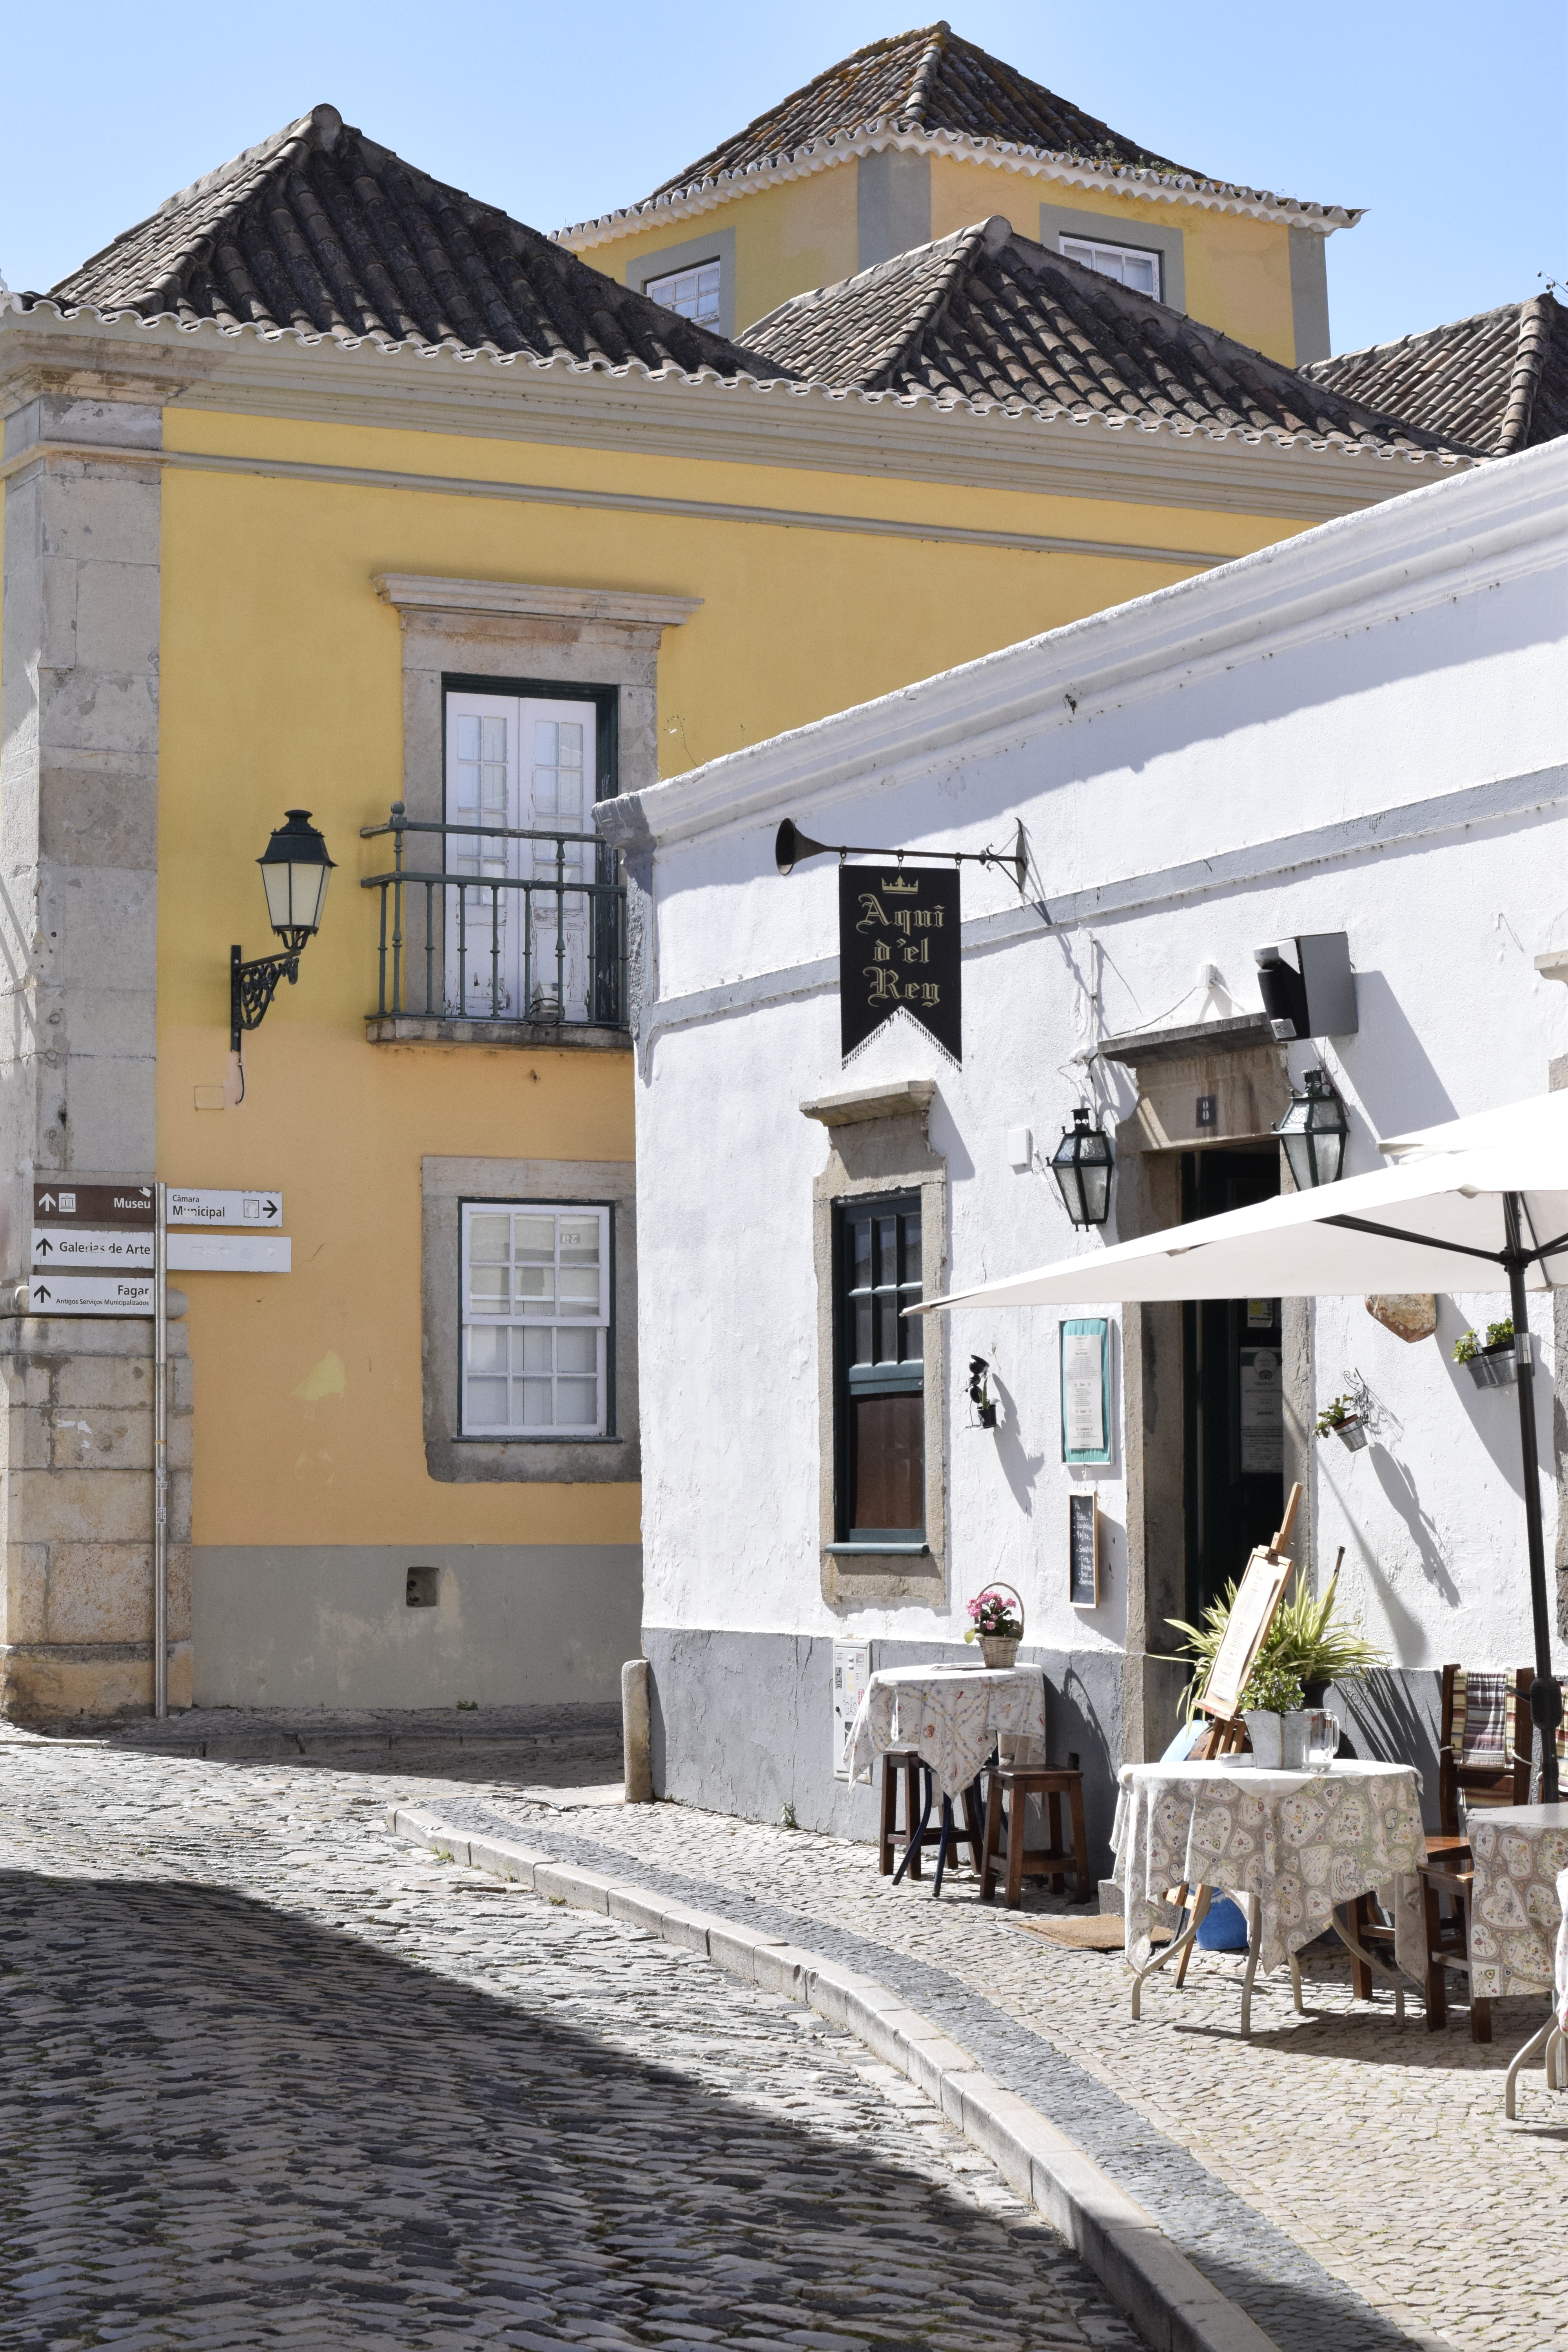 Street of a Portuguese town.